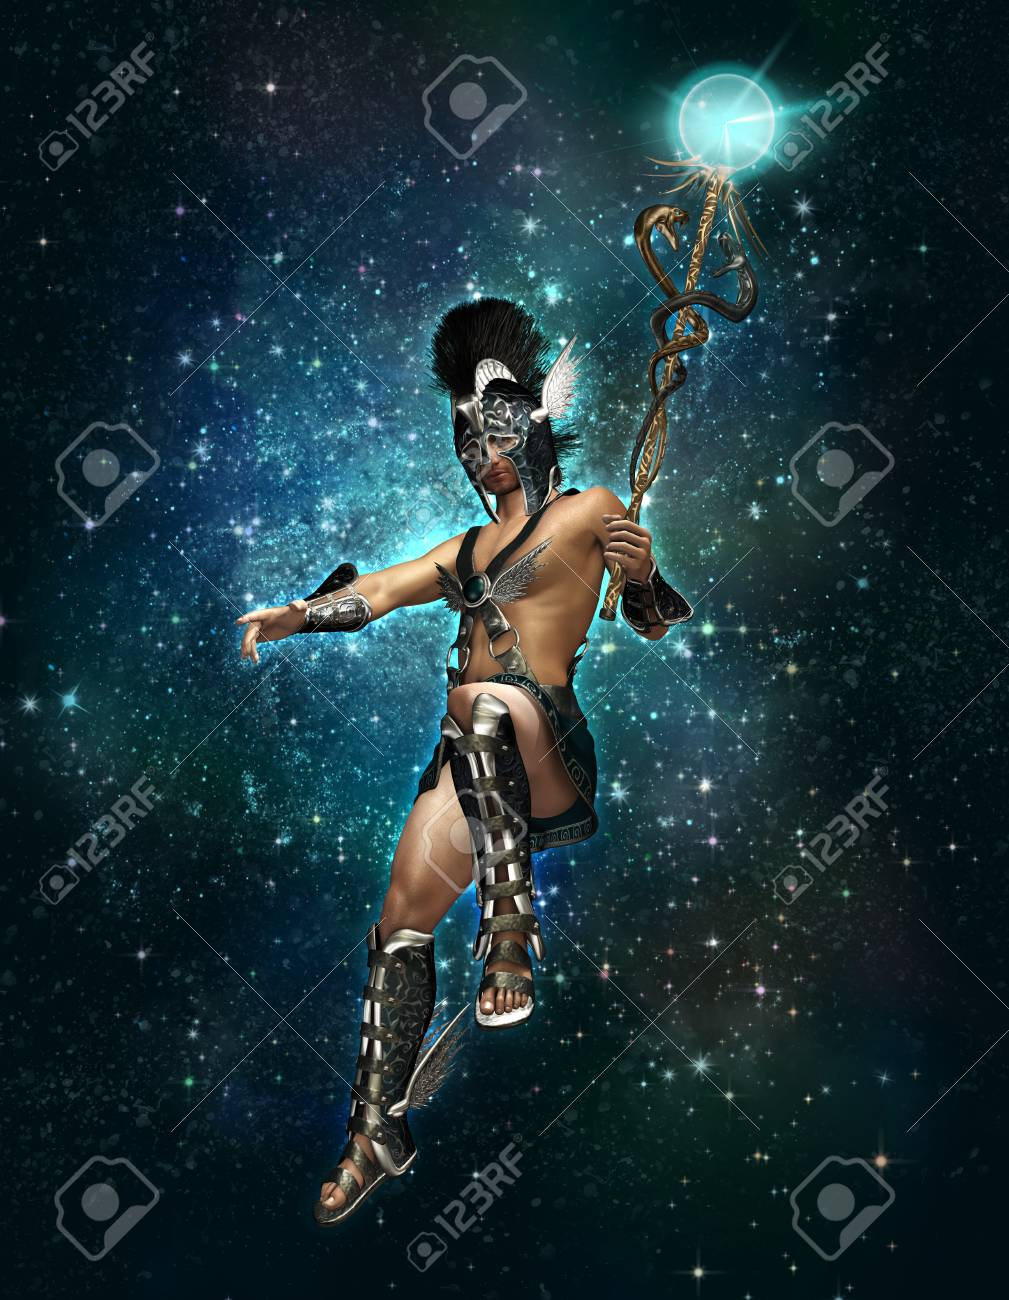 3d computer graphics of a depiction of Hermes at night